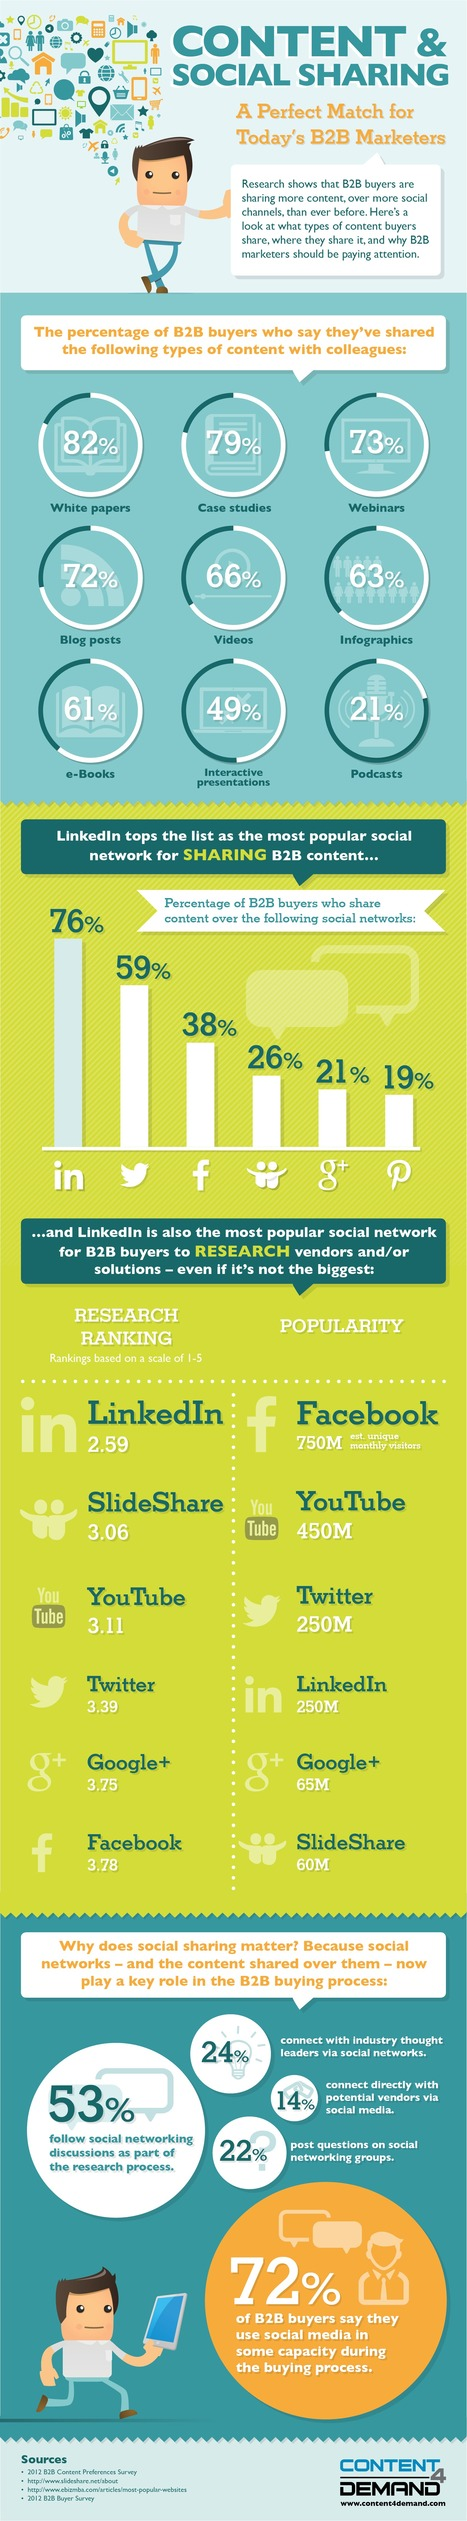 The Powerful Impact of Social Sharing & Content Marketing [Infographic] | Haz | Scoop.it